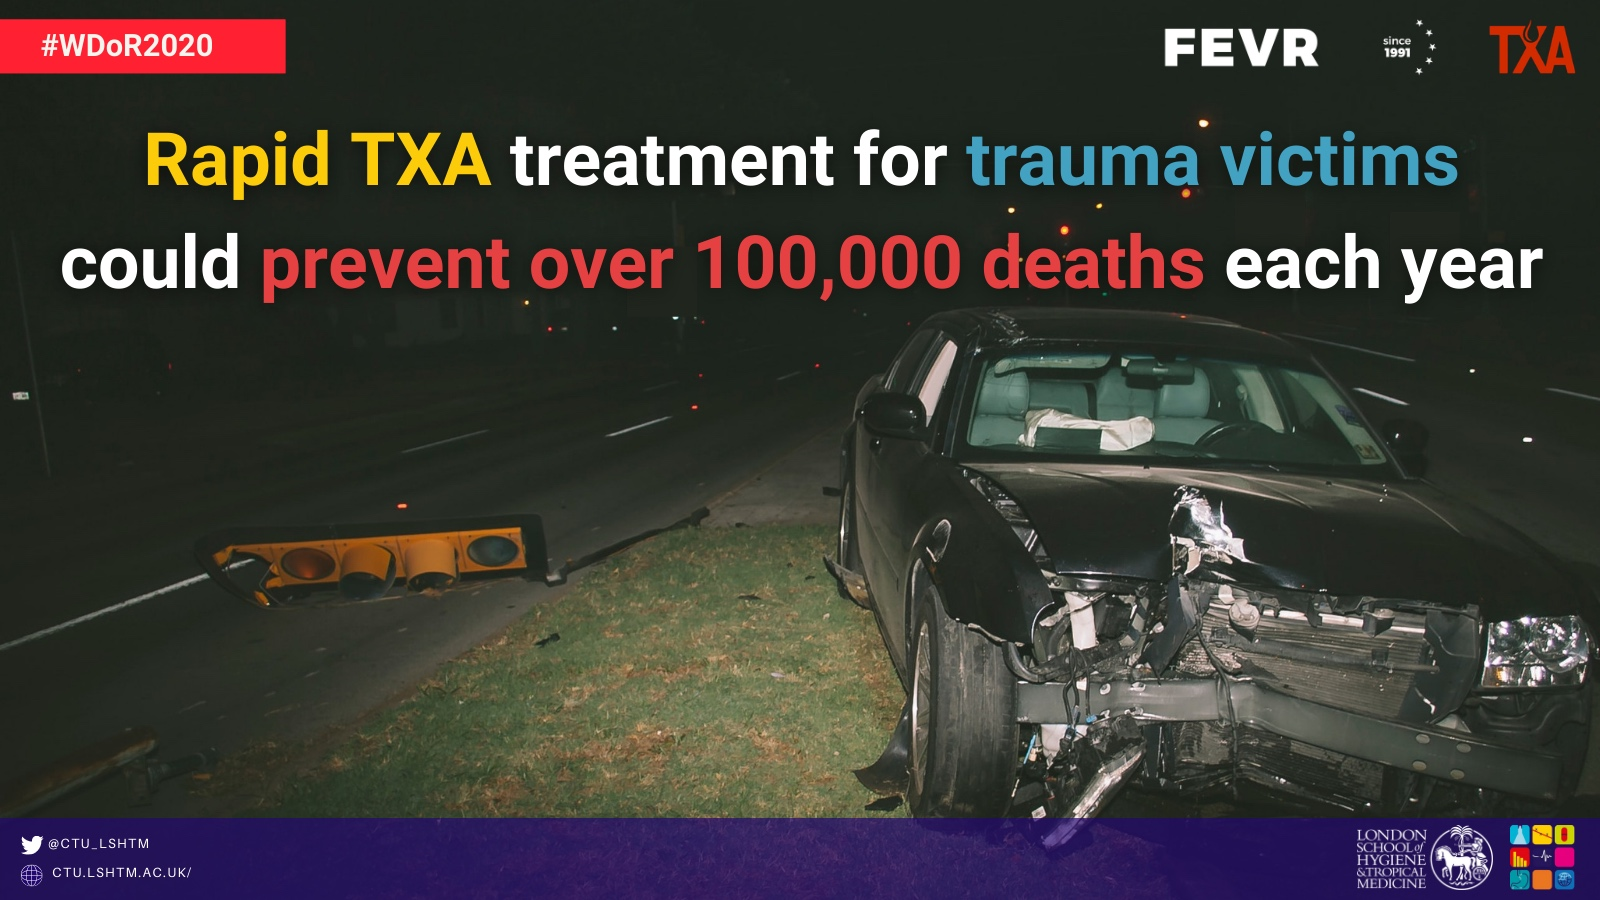 World day of remembrance for road traffic victims LSHTM-CTU tranexamic acid TXA